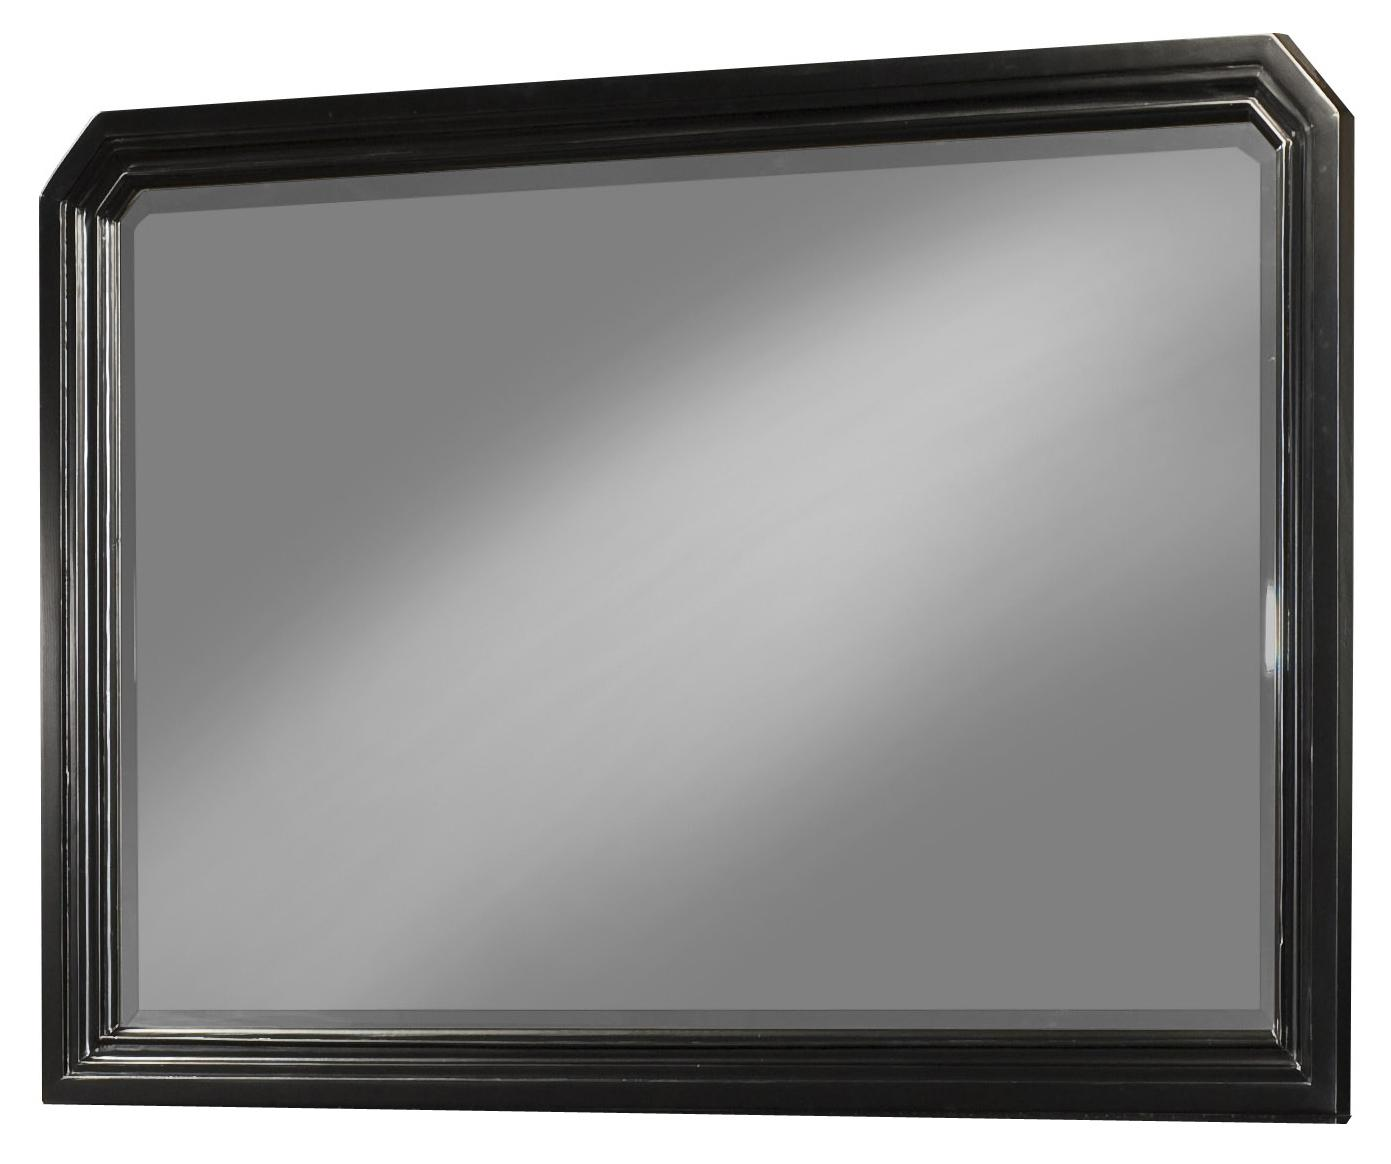 Morris Home Furnishings Darlington Darlington Mirror - Item Number: 652-660